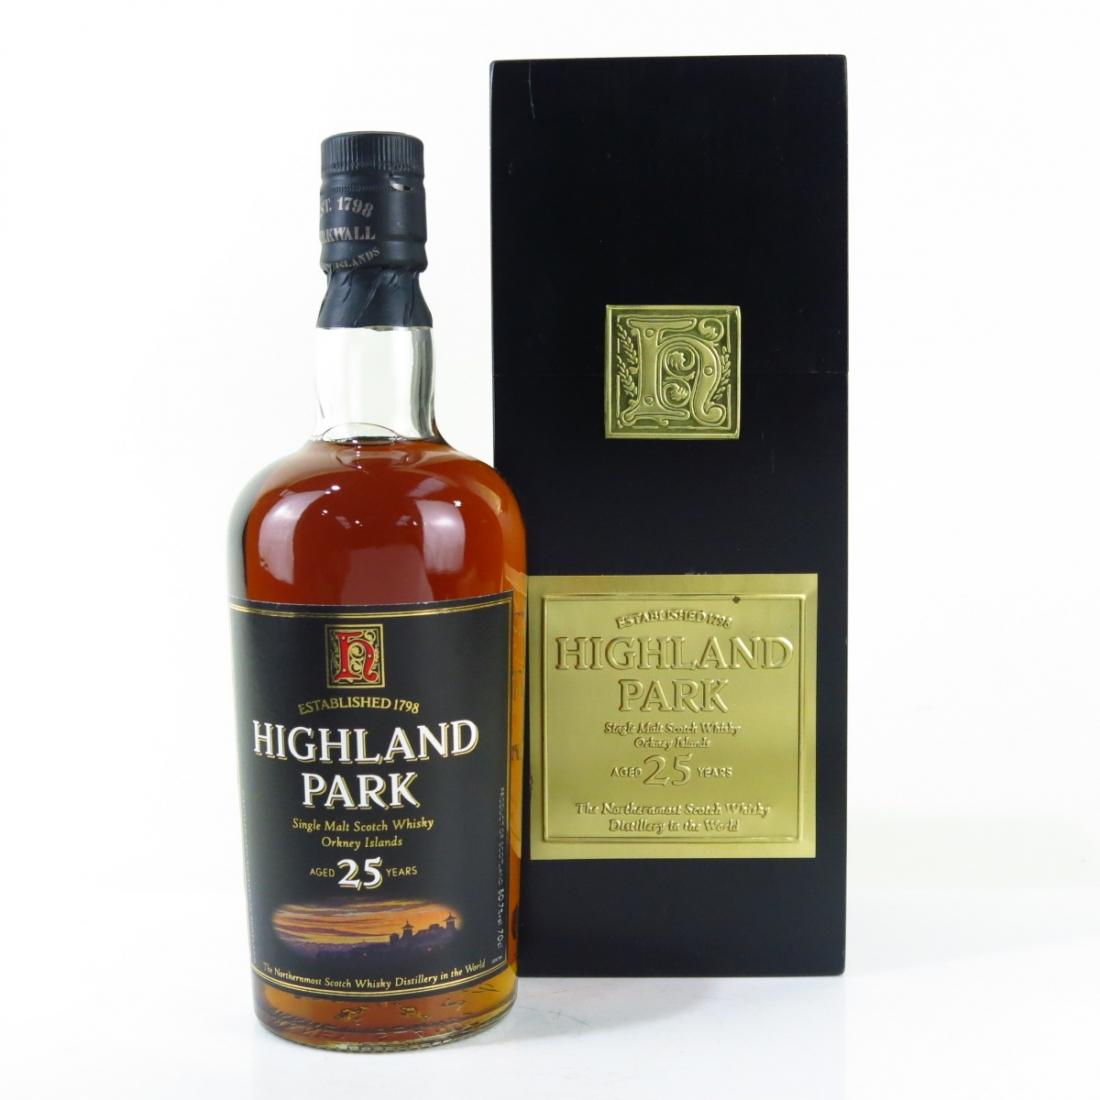 Highland Park 25 Year Old / Square Box